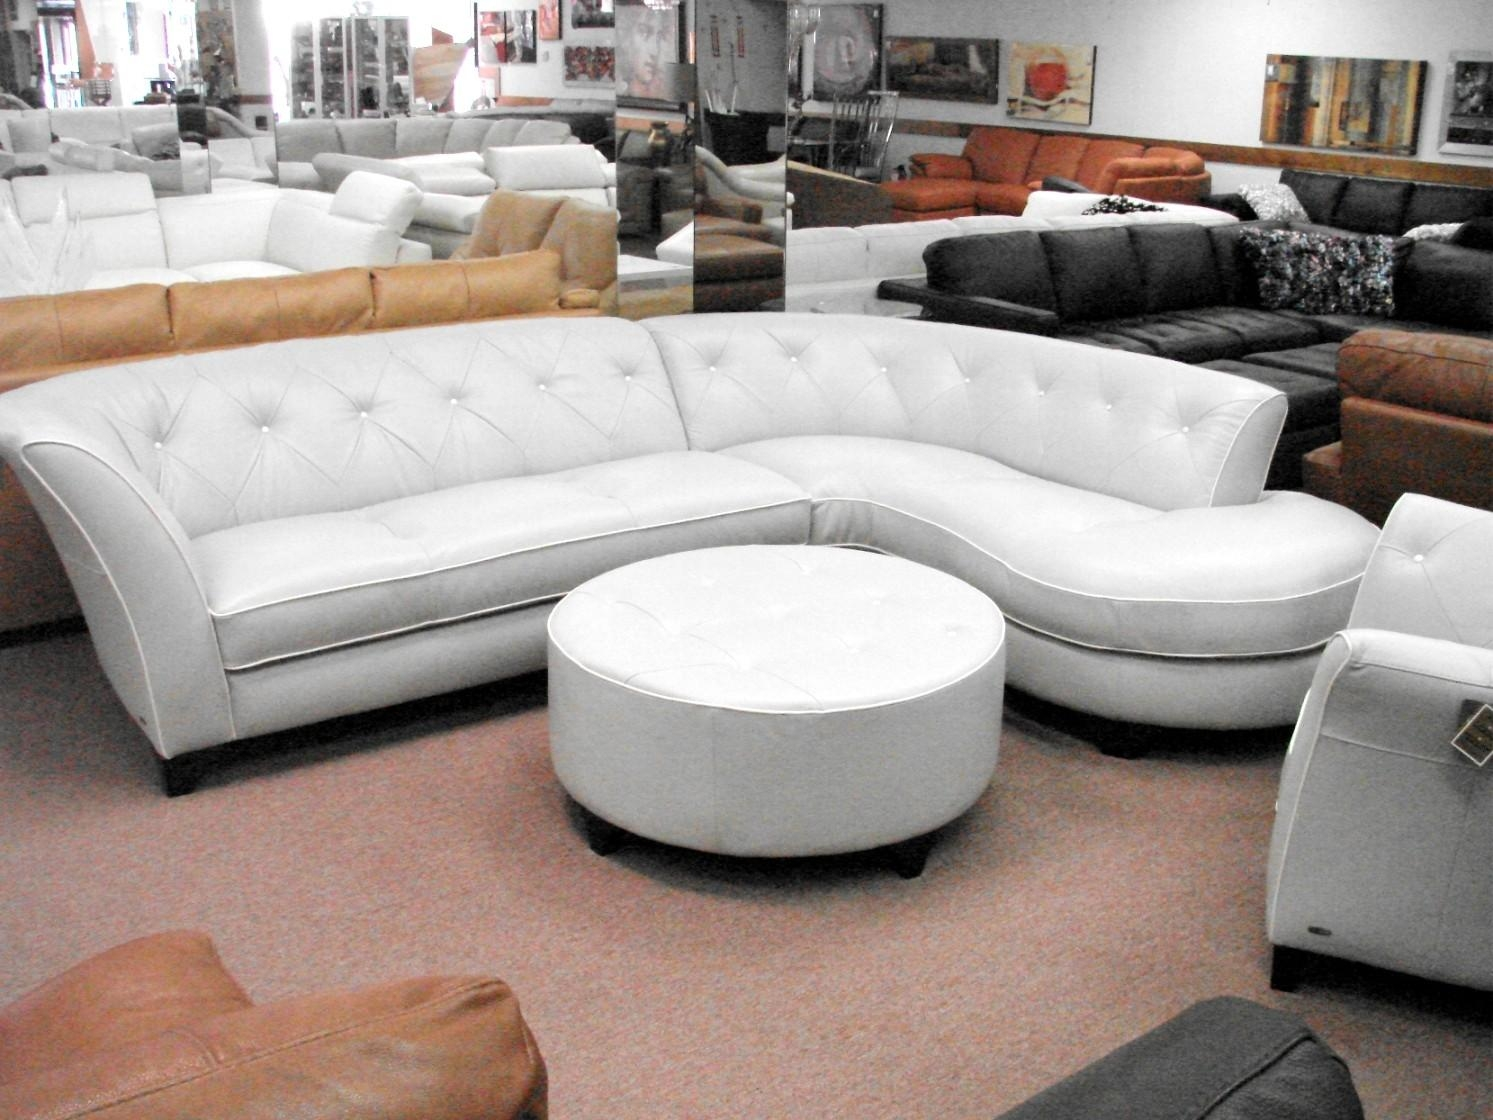 Natuzzi Sectional Sofa | Sofa Gallery | Kengire within Natuzzi Microfiber Sectional Sofas